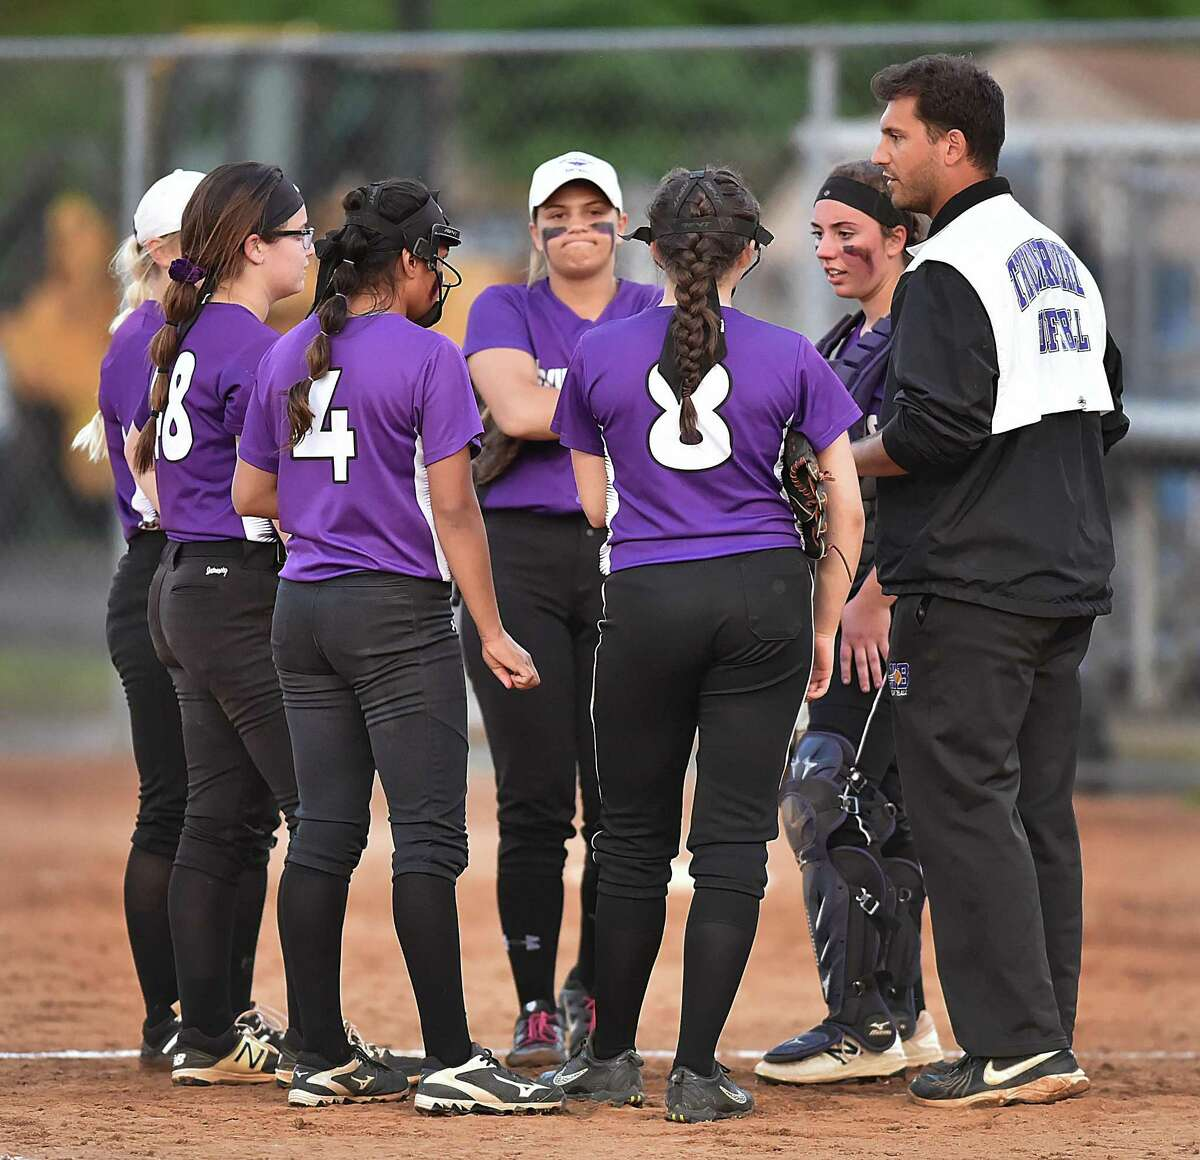 North Branford coach Nick DeLizio visits the mound in the top of the seventh inning against Griswold in the Class M softball semifinals on Thursday.